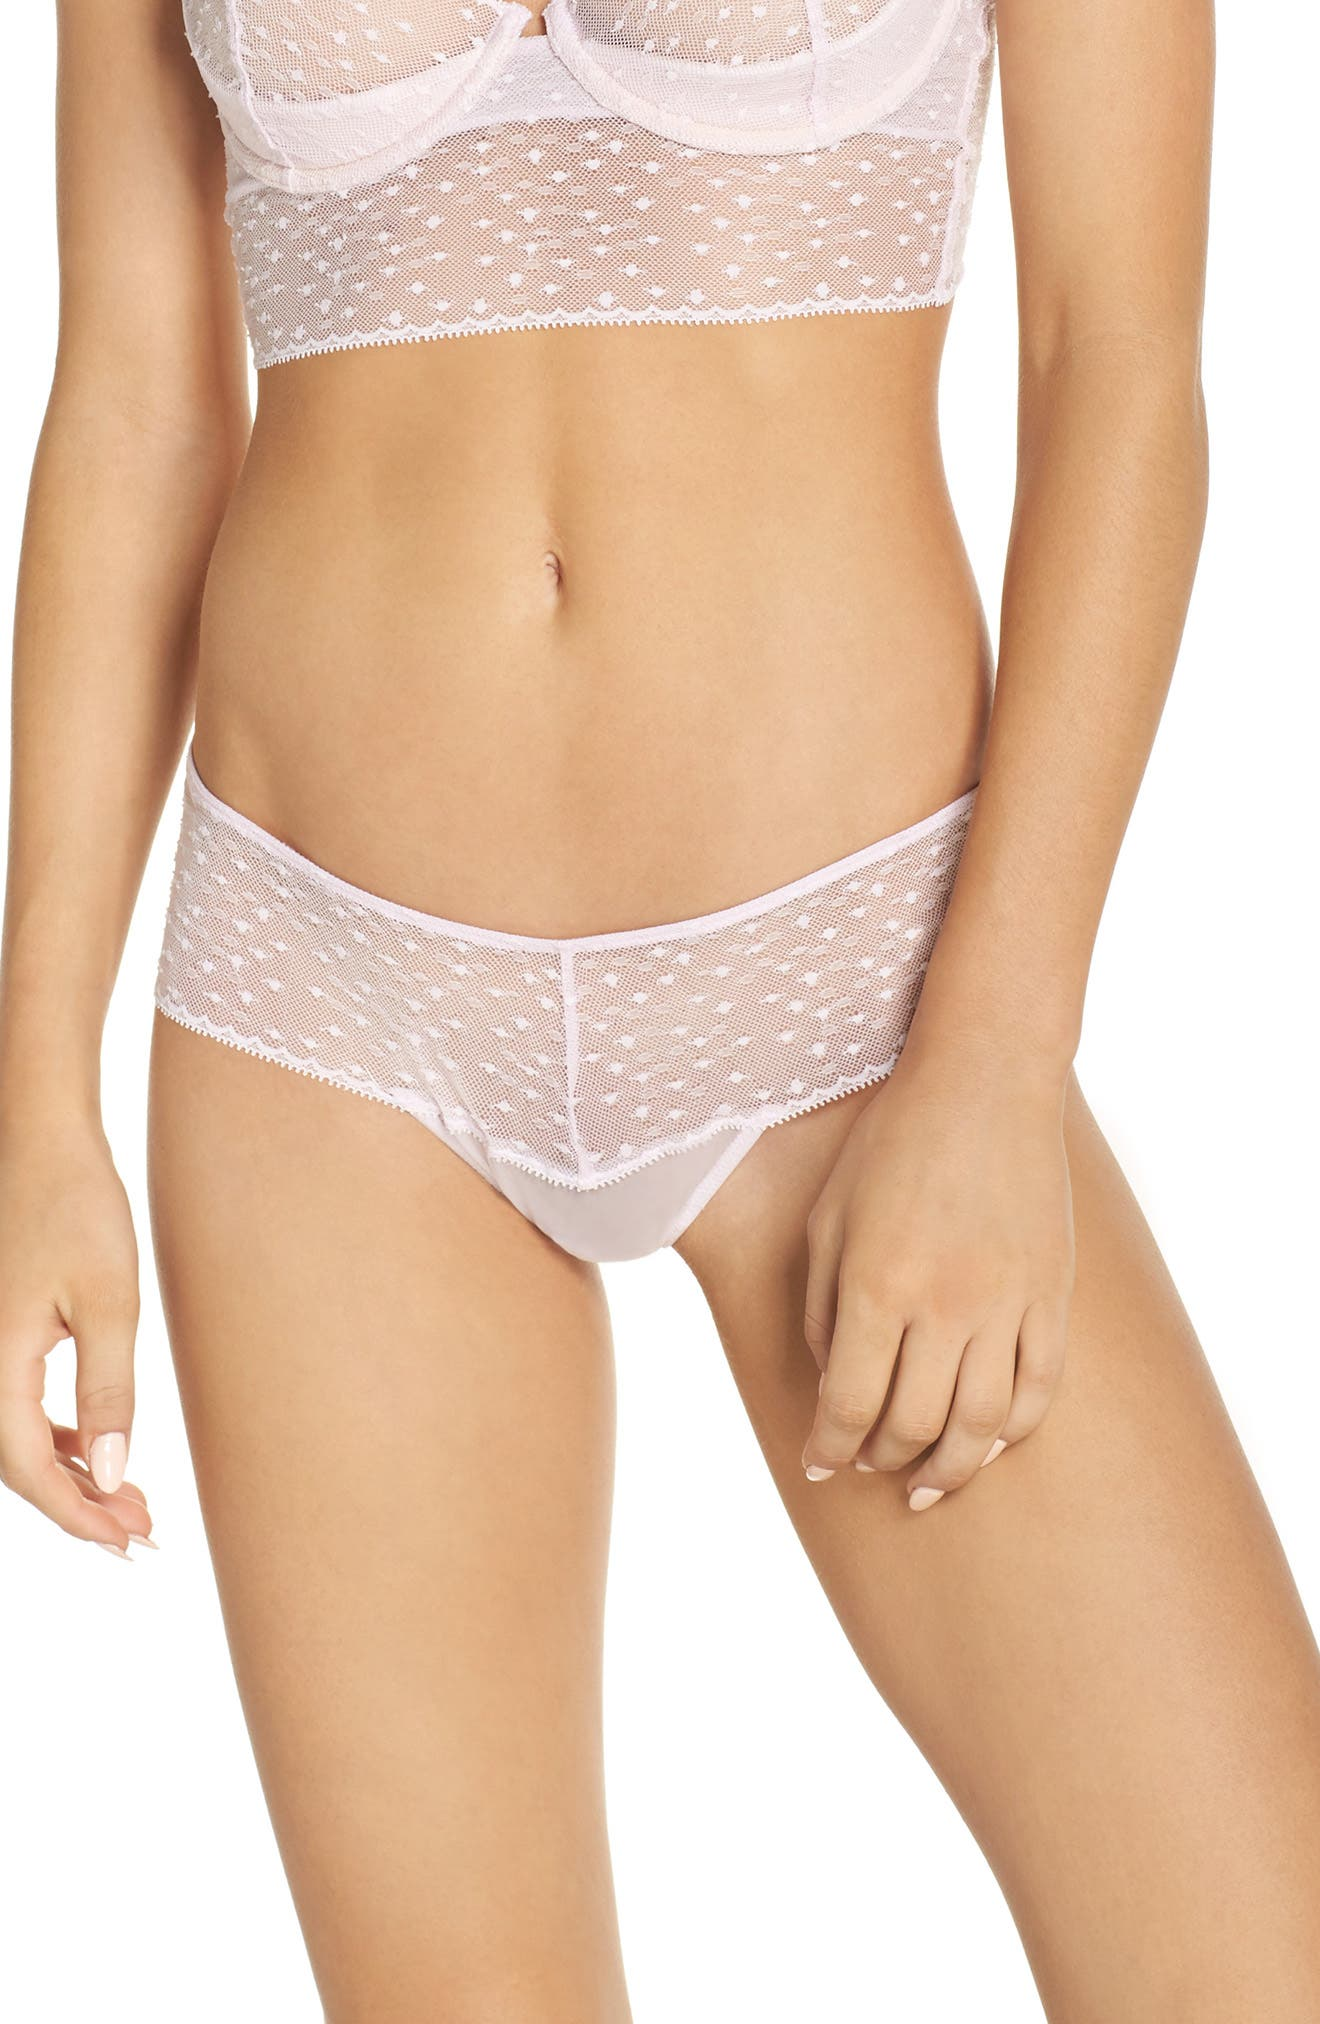 Decoy Cheeky Hipster Briefs,                         Main,                         color, Light Hearted